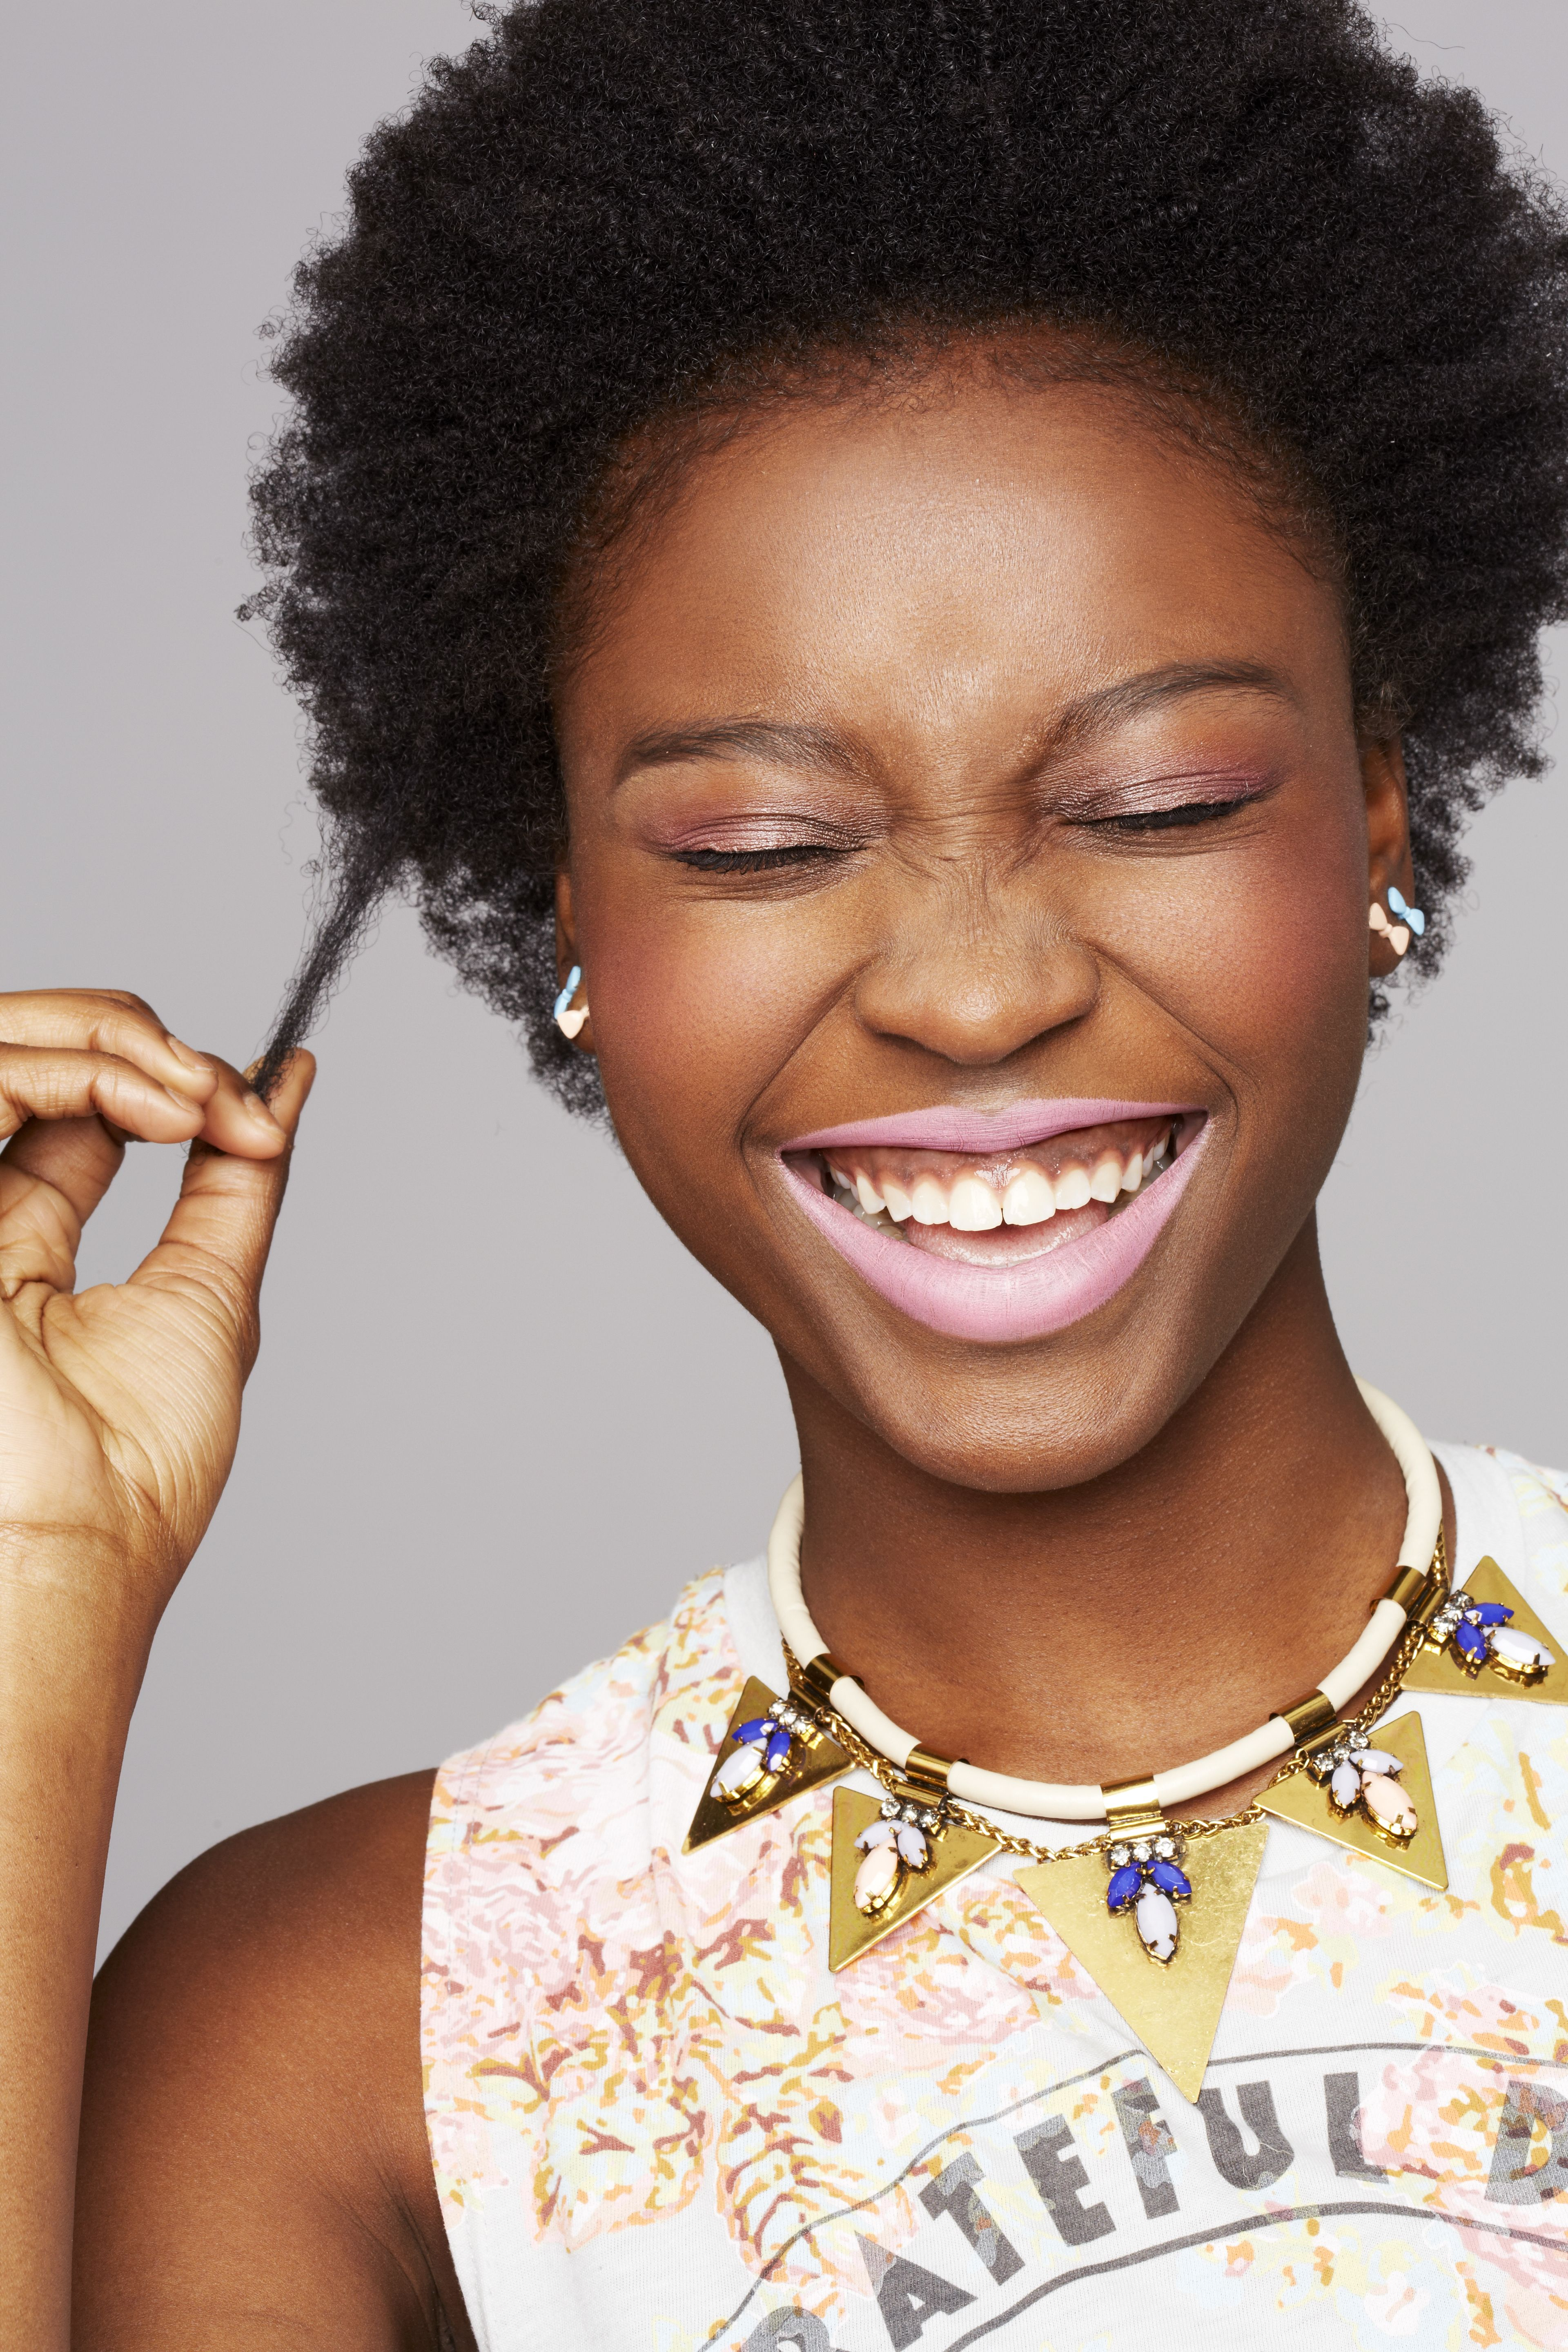 The 9 Stages Of Going Natural Natural Hair Transitioning